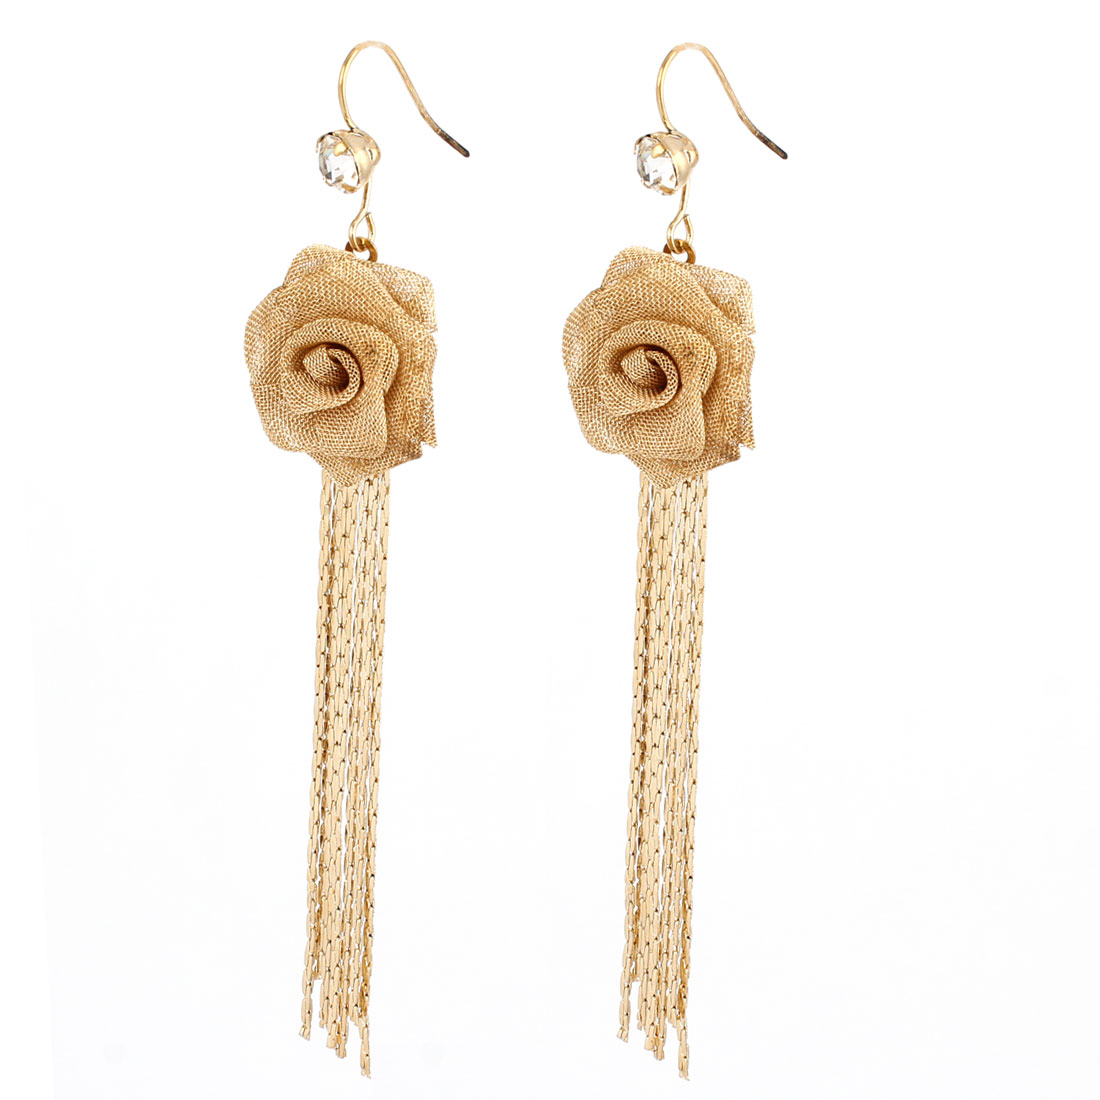 Metal Chain Tassels Peony Shaped Pendant Hook Earrings Gold Tone Pair for Woman